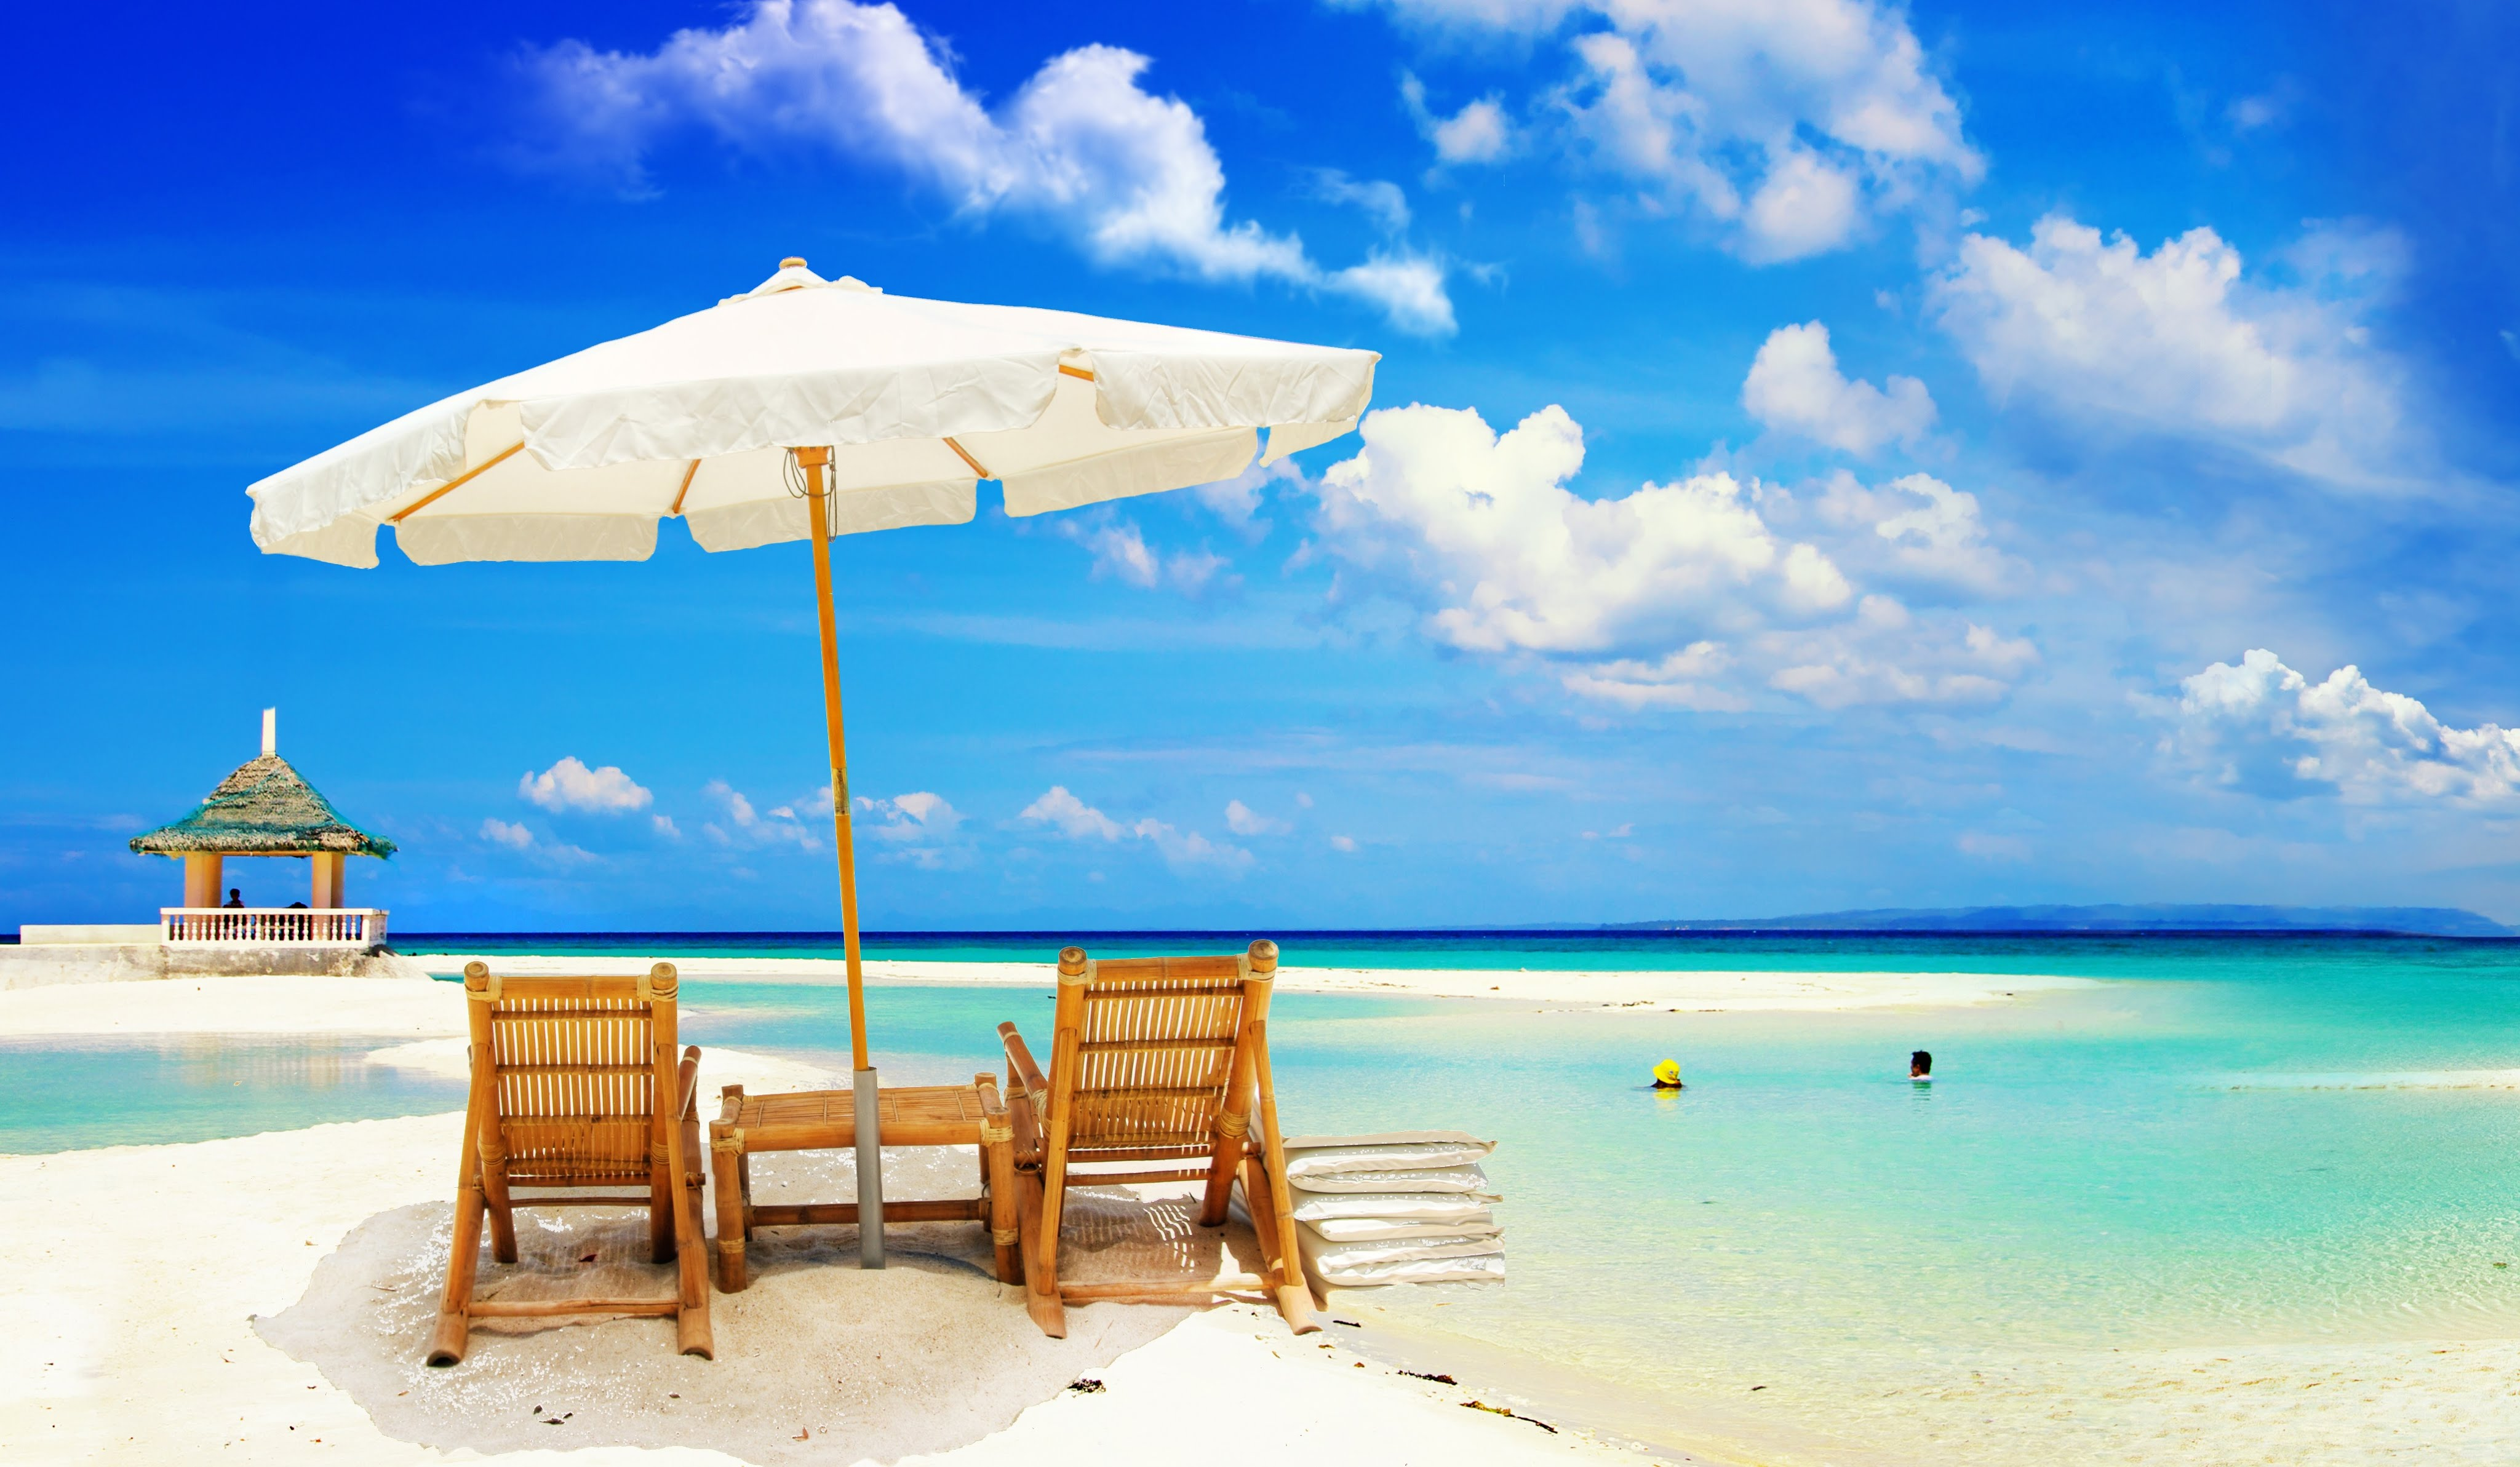 V 783: Beautiful Beach Pictures, HD Images of Beautiful Beach